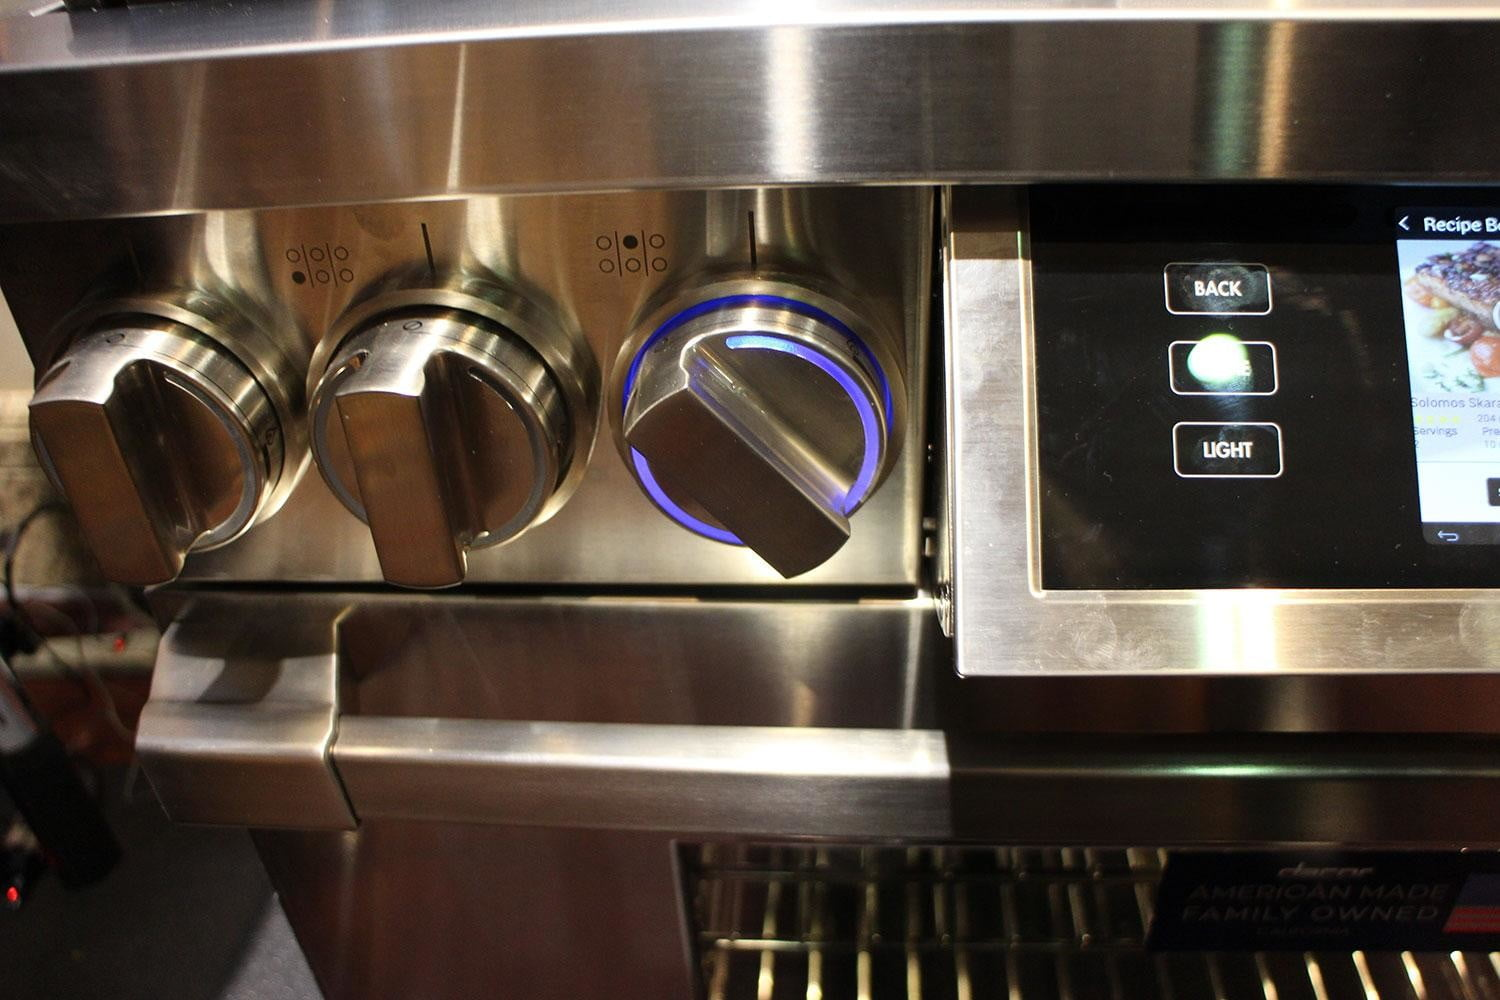 dacors voice activated oven debuts at ces 2015 dacor discovery iq dual fuel range 0260